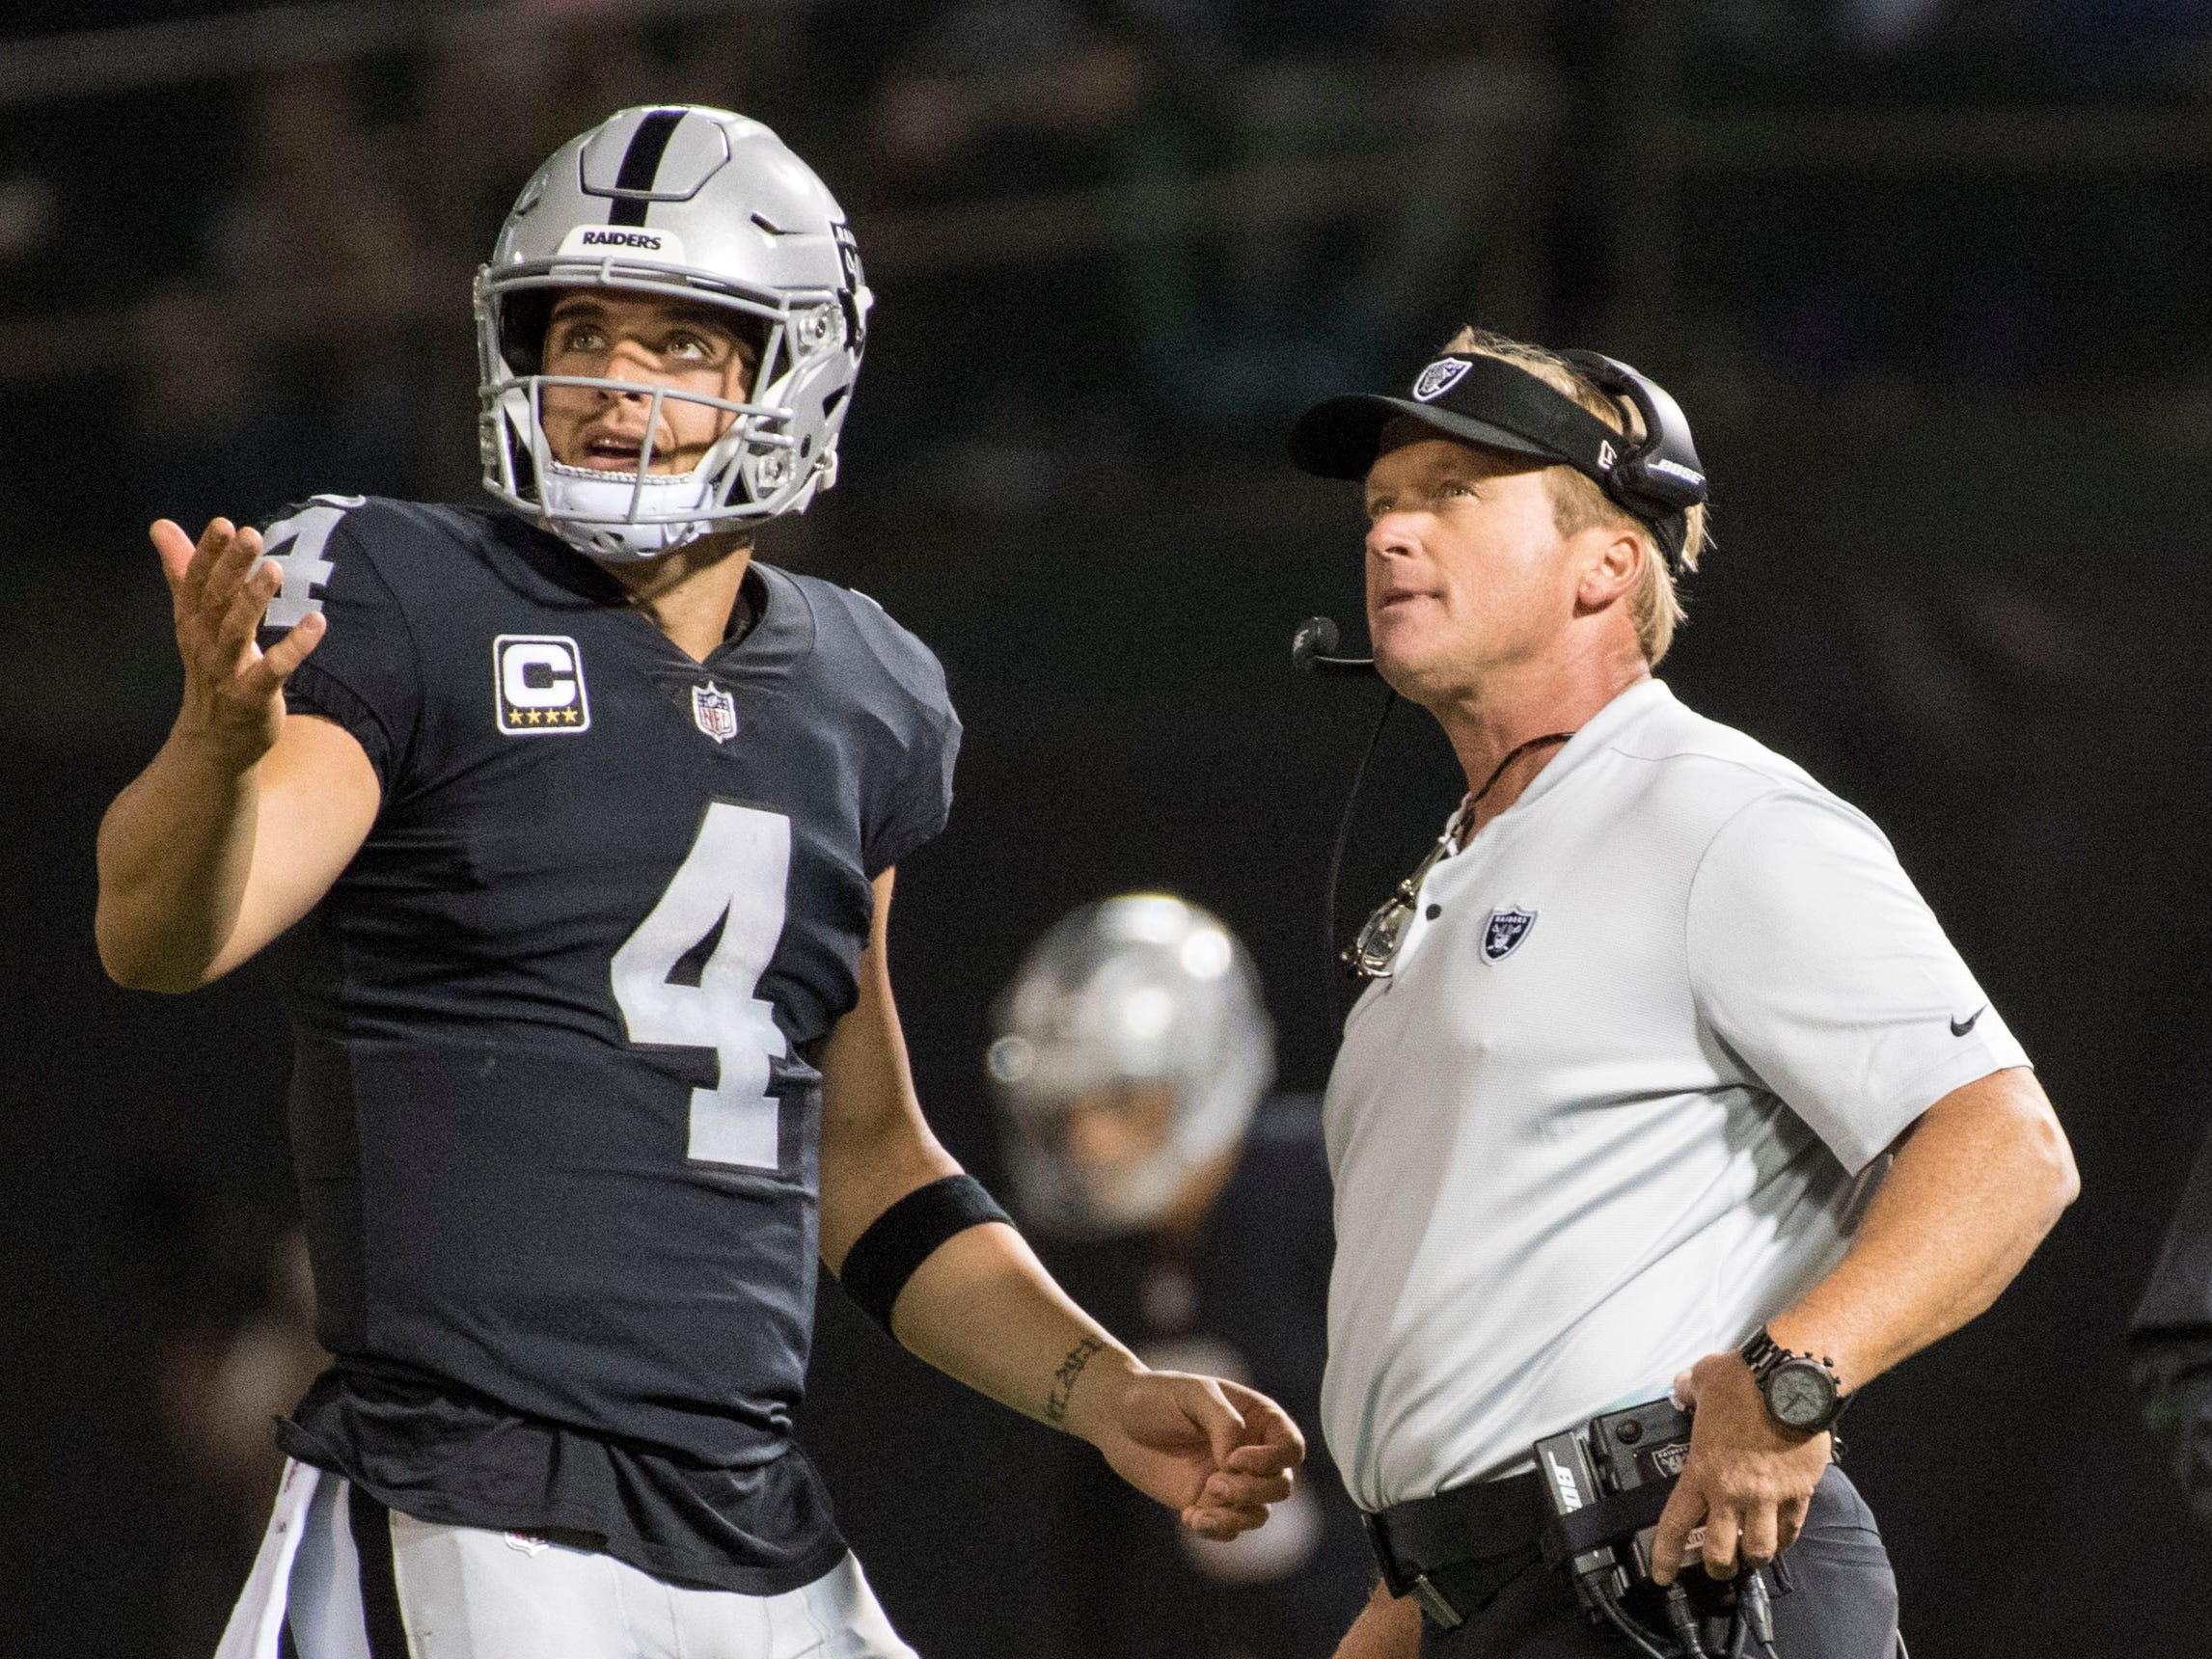 29. Raiders (28): By end of Jon Gruden's re-debut, Derek Carr was making shaky decisions while Mack-less defense was left looking worn and beaten.